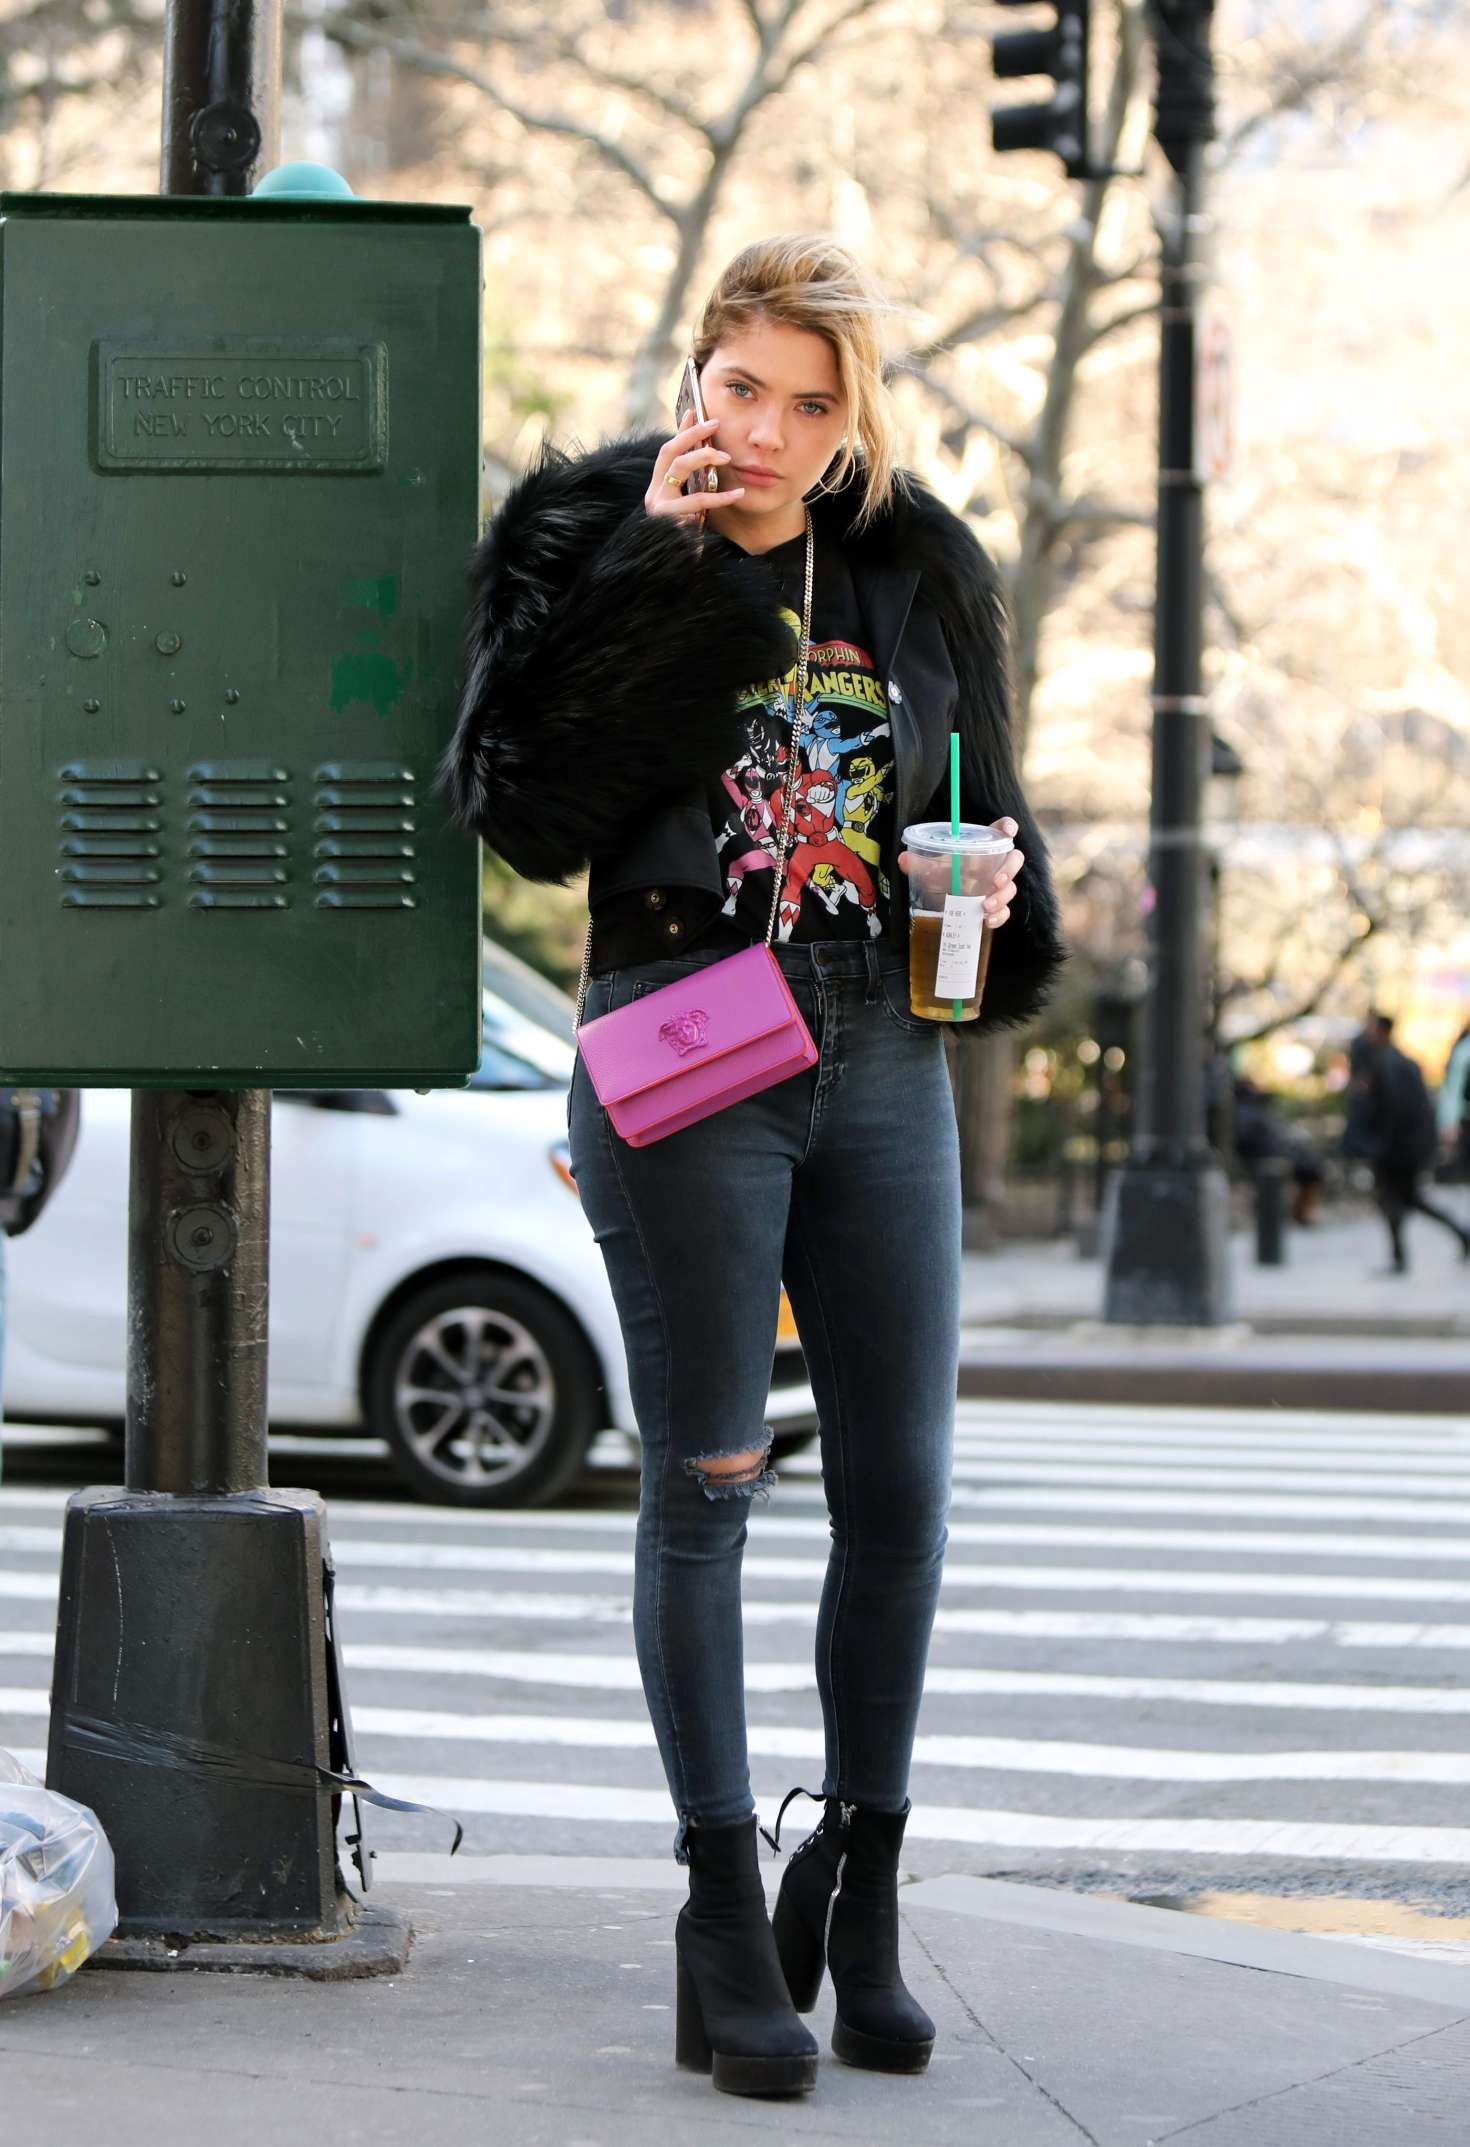 Ashley Benson went out in power Rangers T-shirt